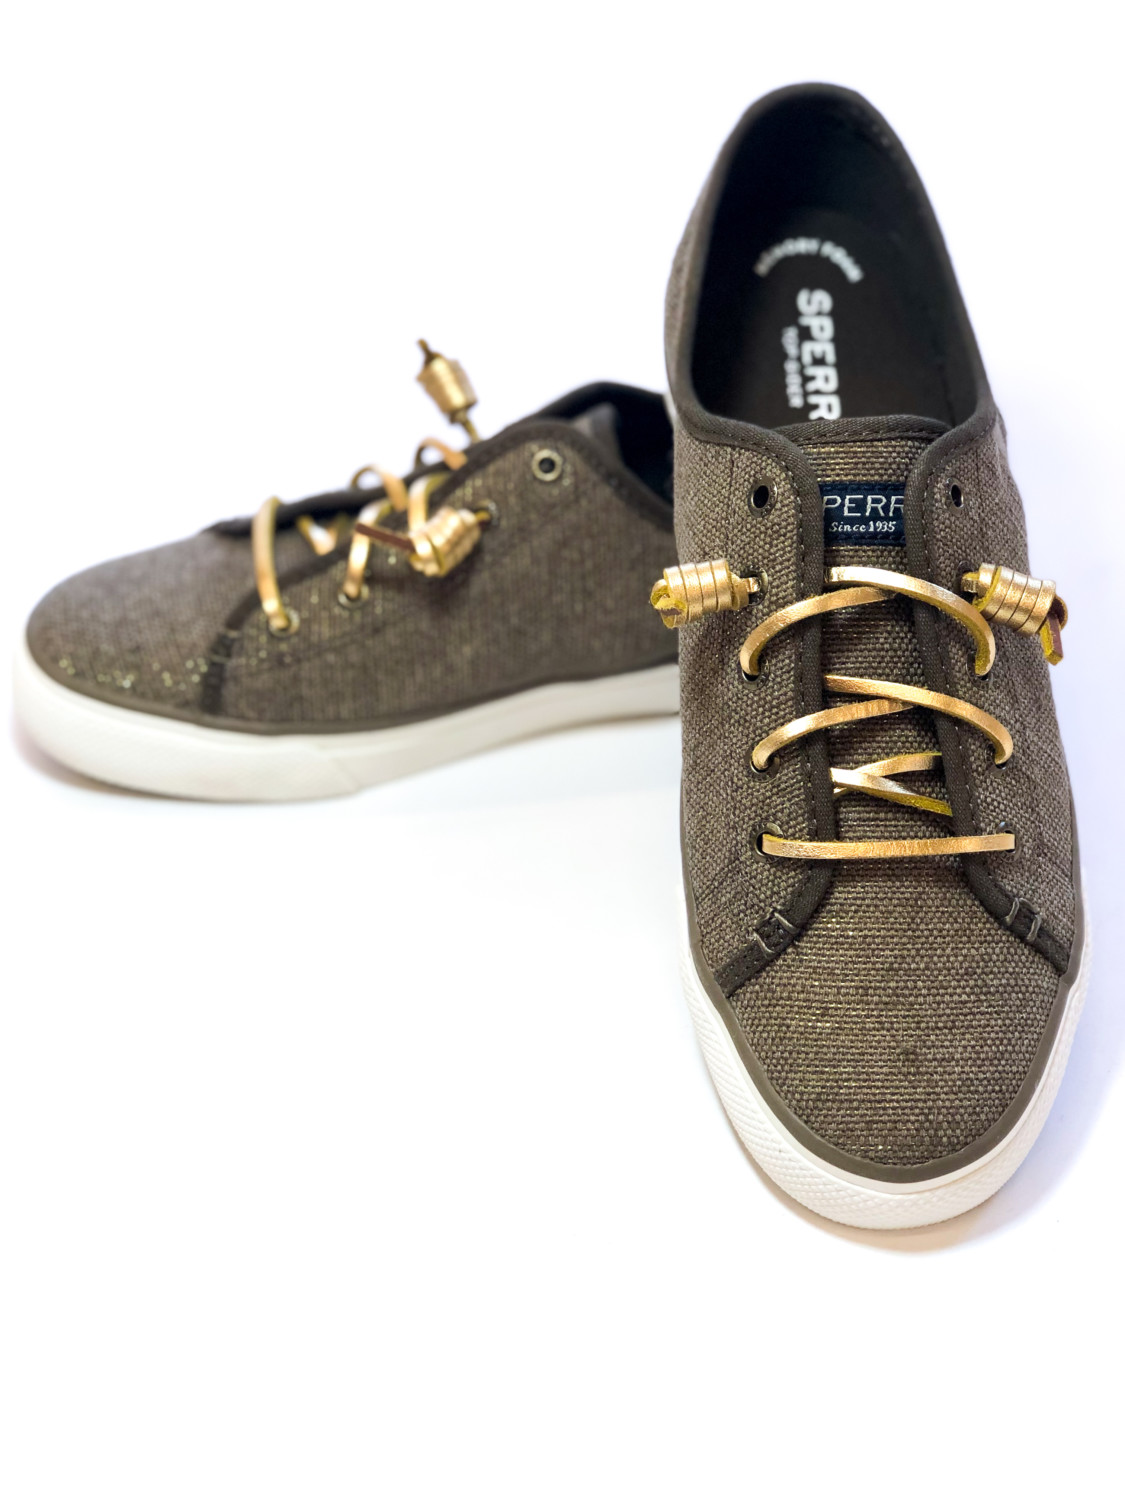 Sperry – Original Retail: $60, CWS: $21